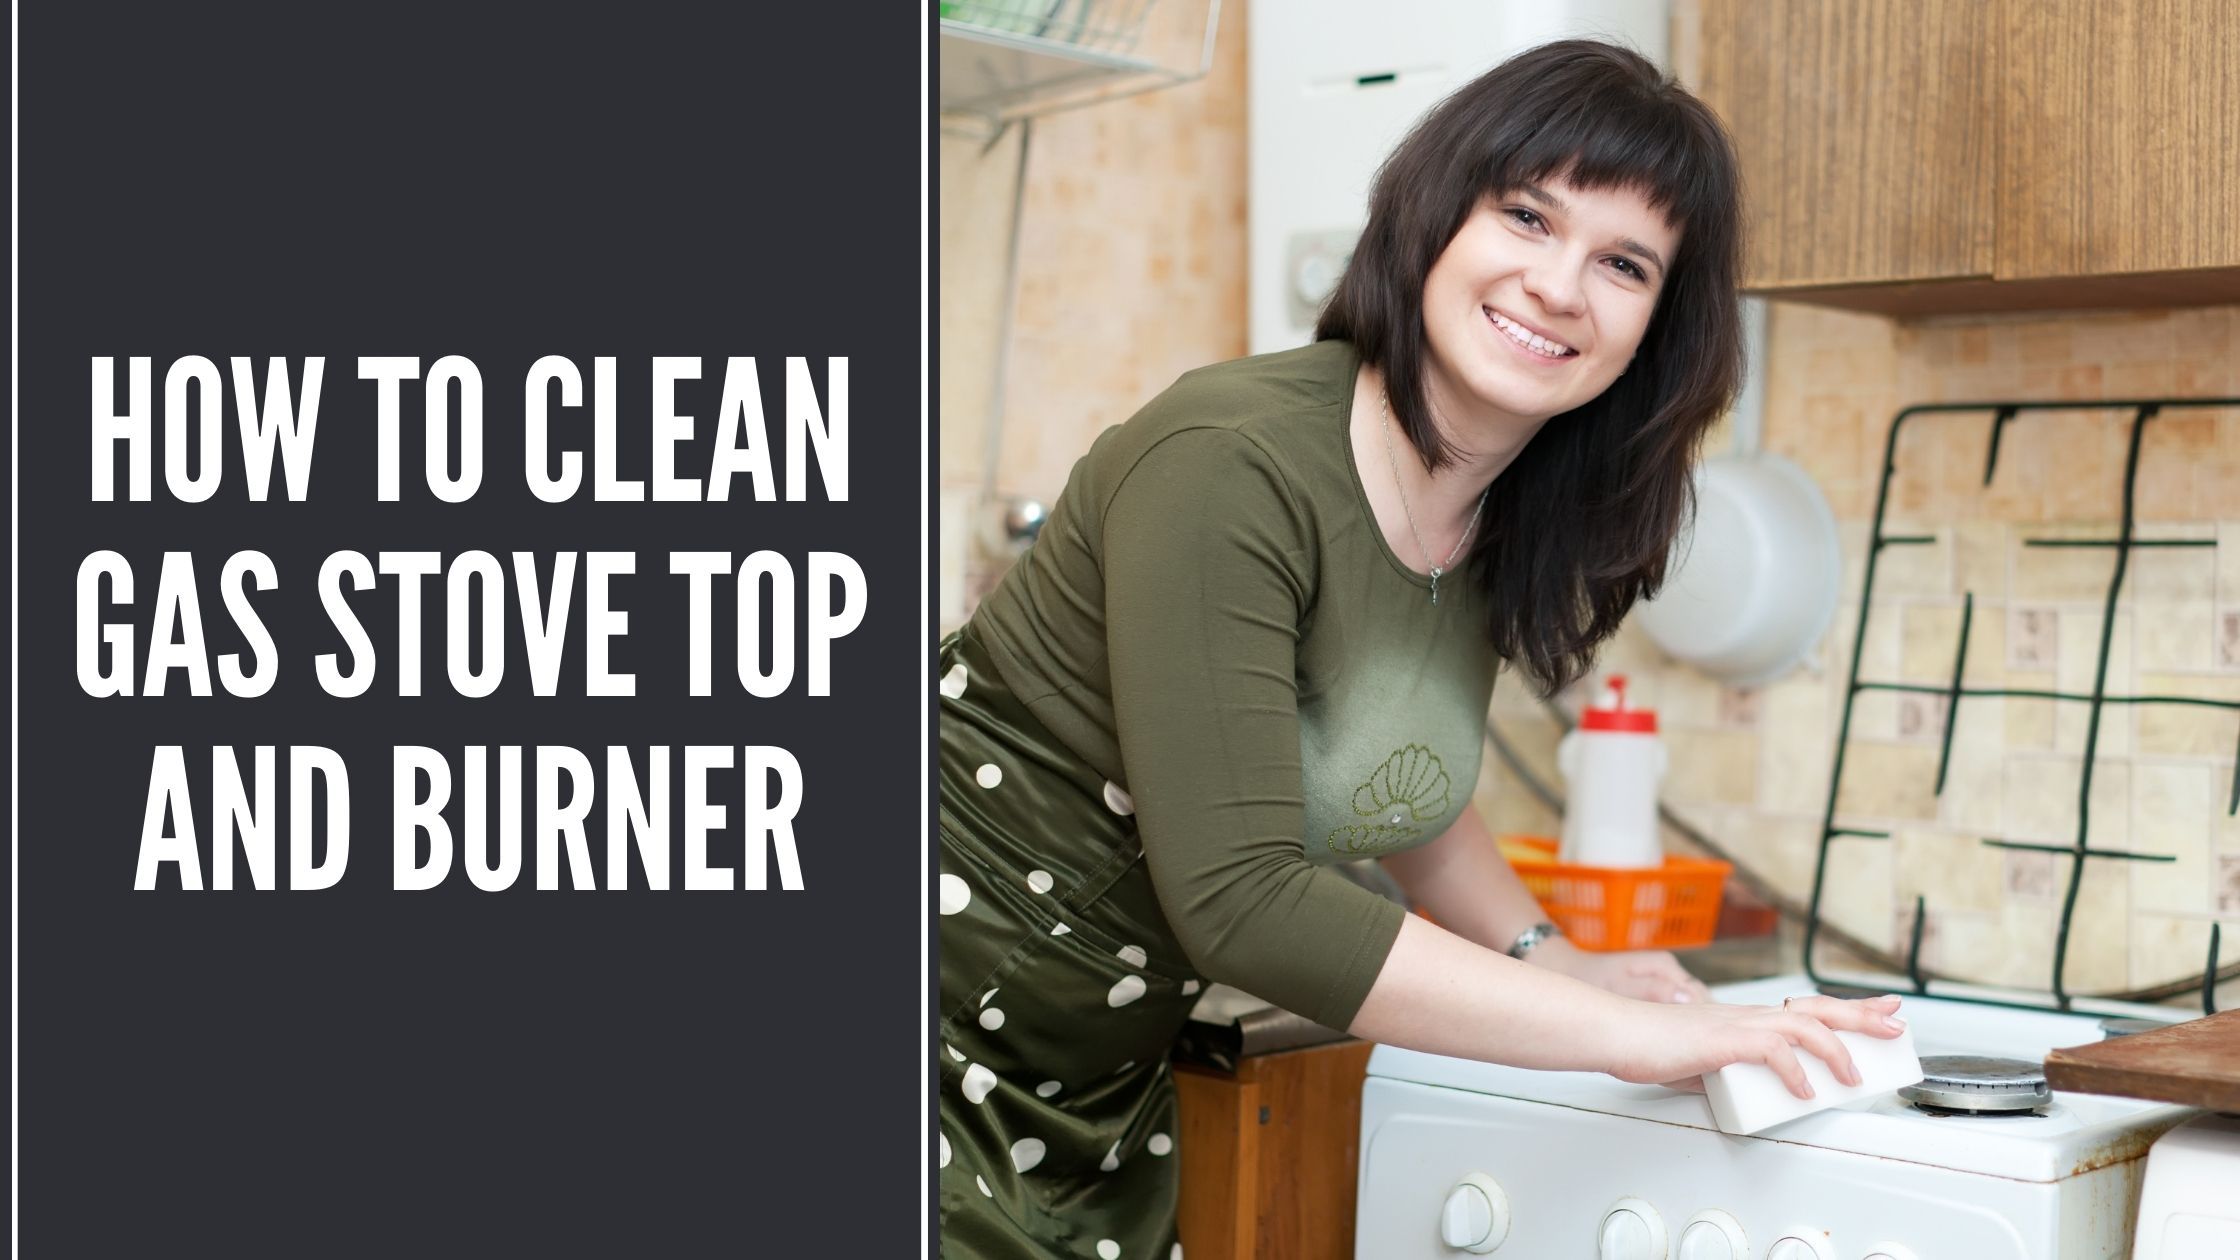 How to Clean Gas Stove Top and Burner